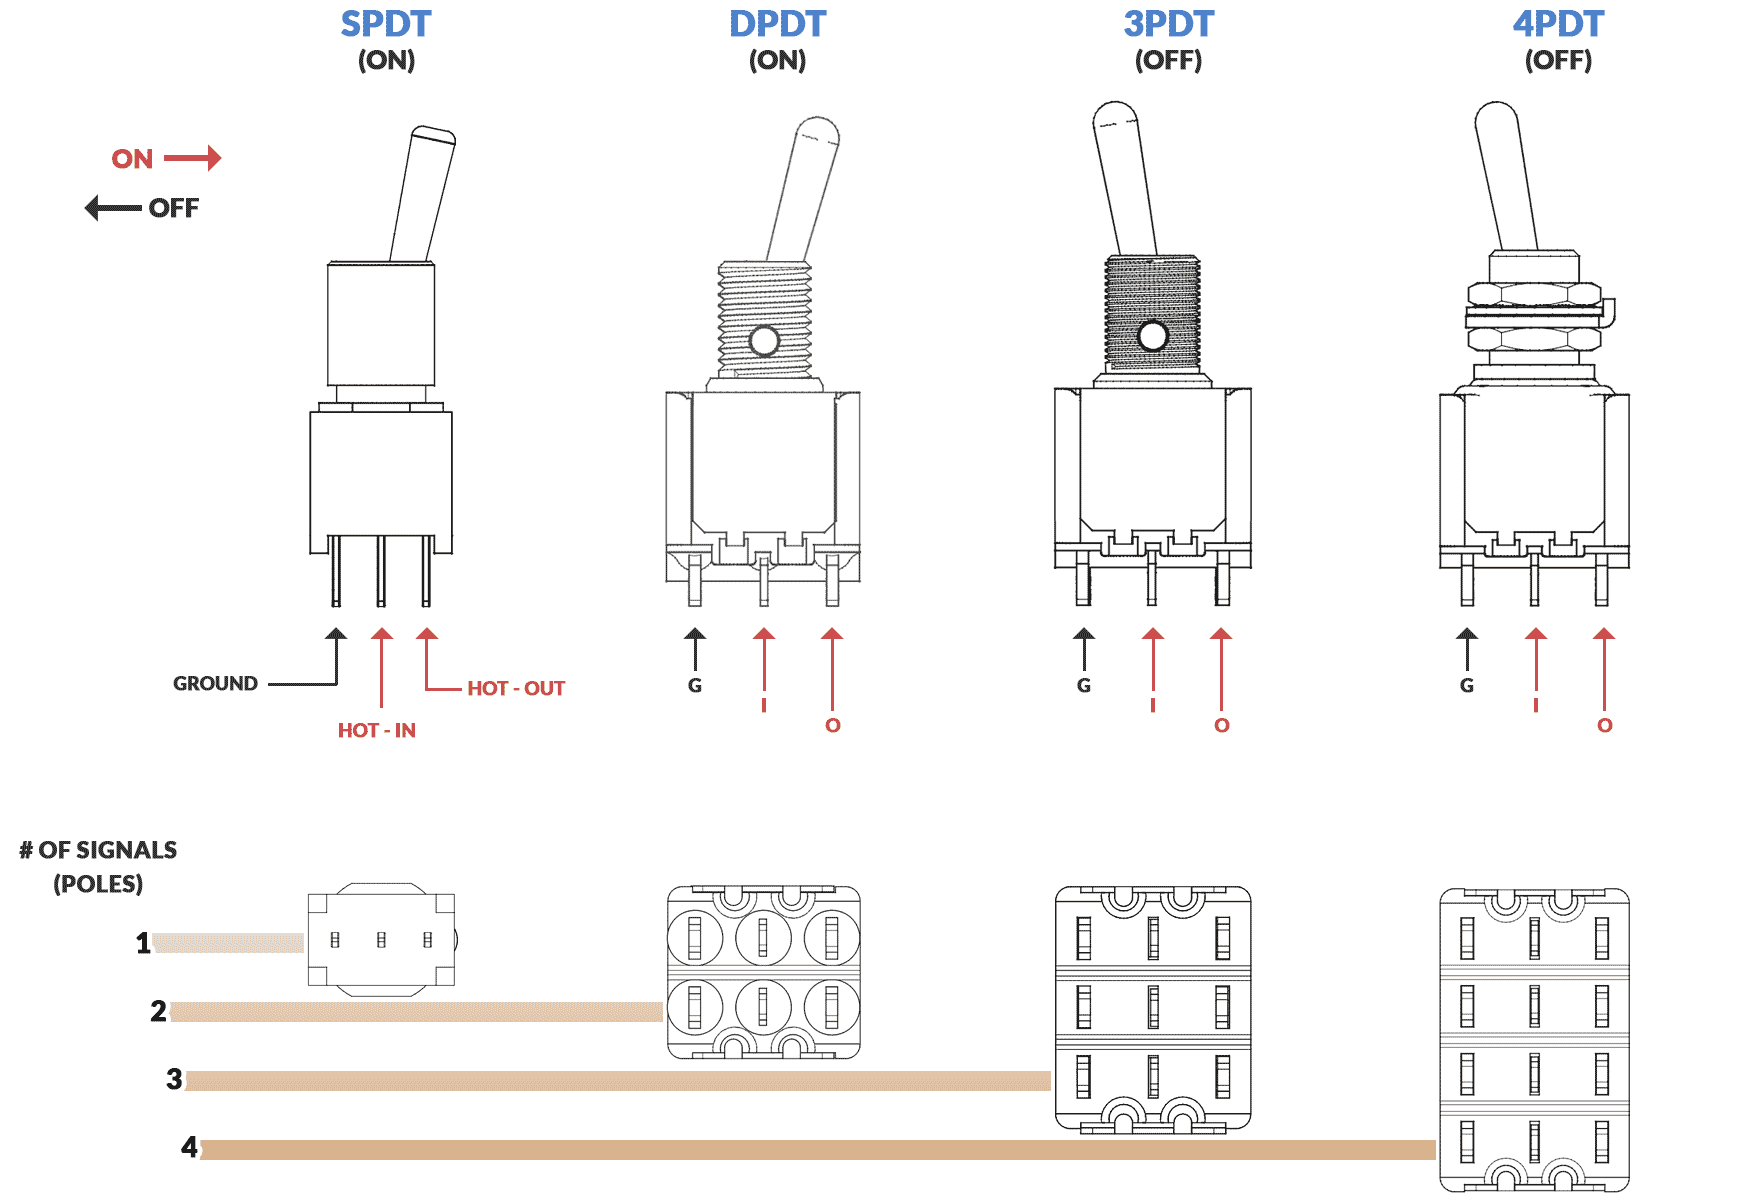 spdt switch schematic illuminated spdt switch wiring diagram